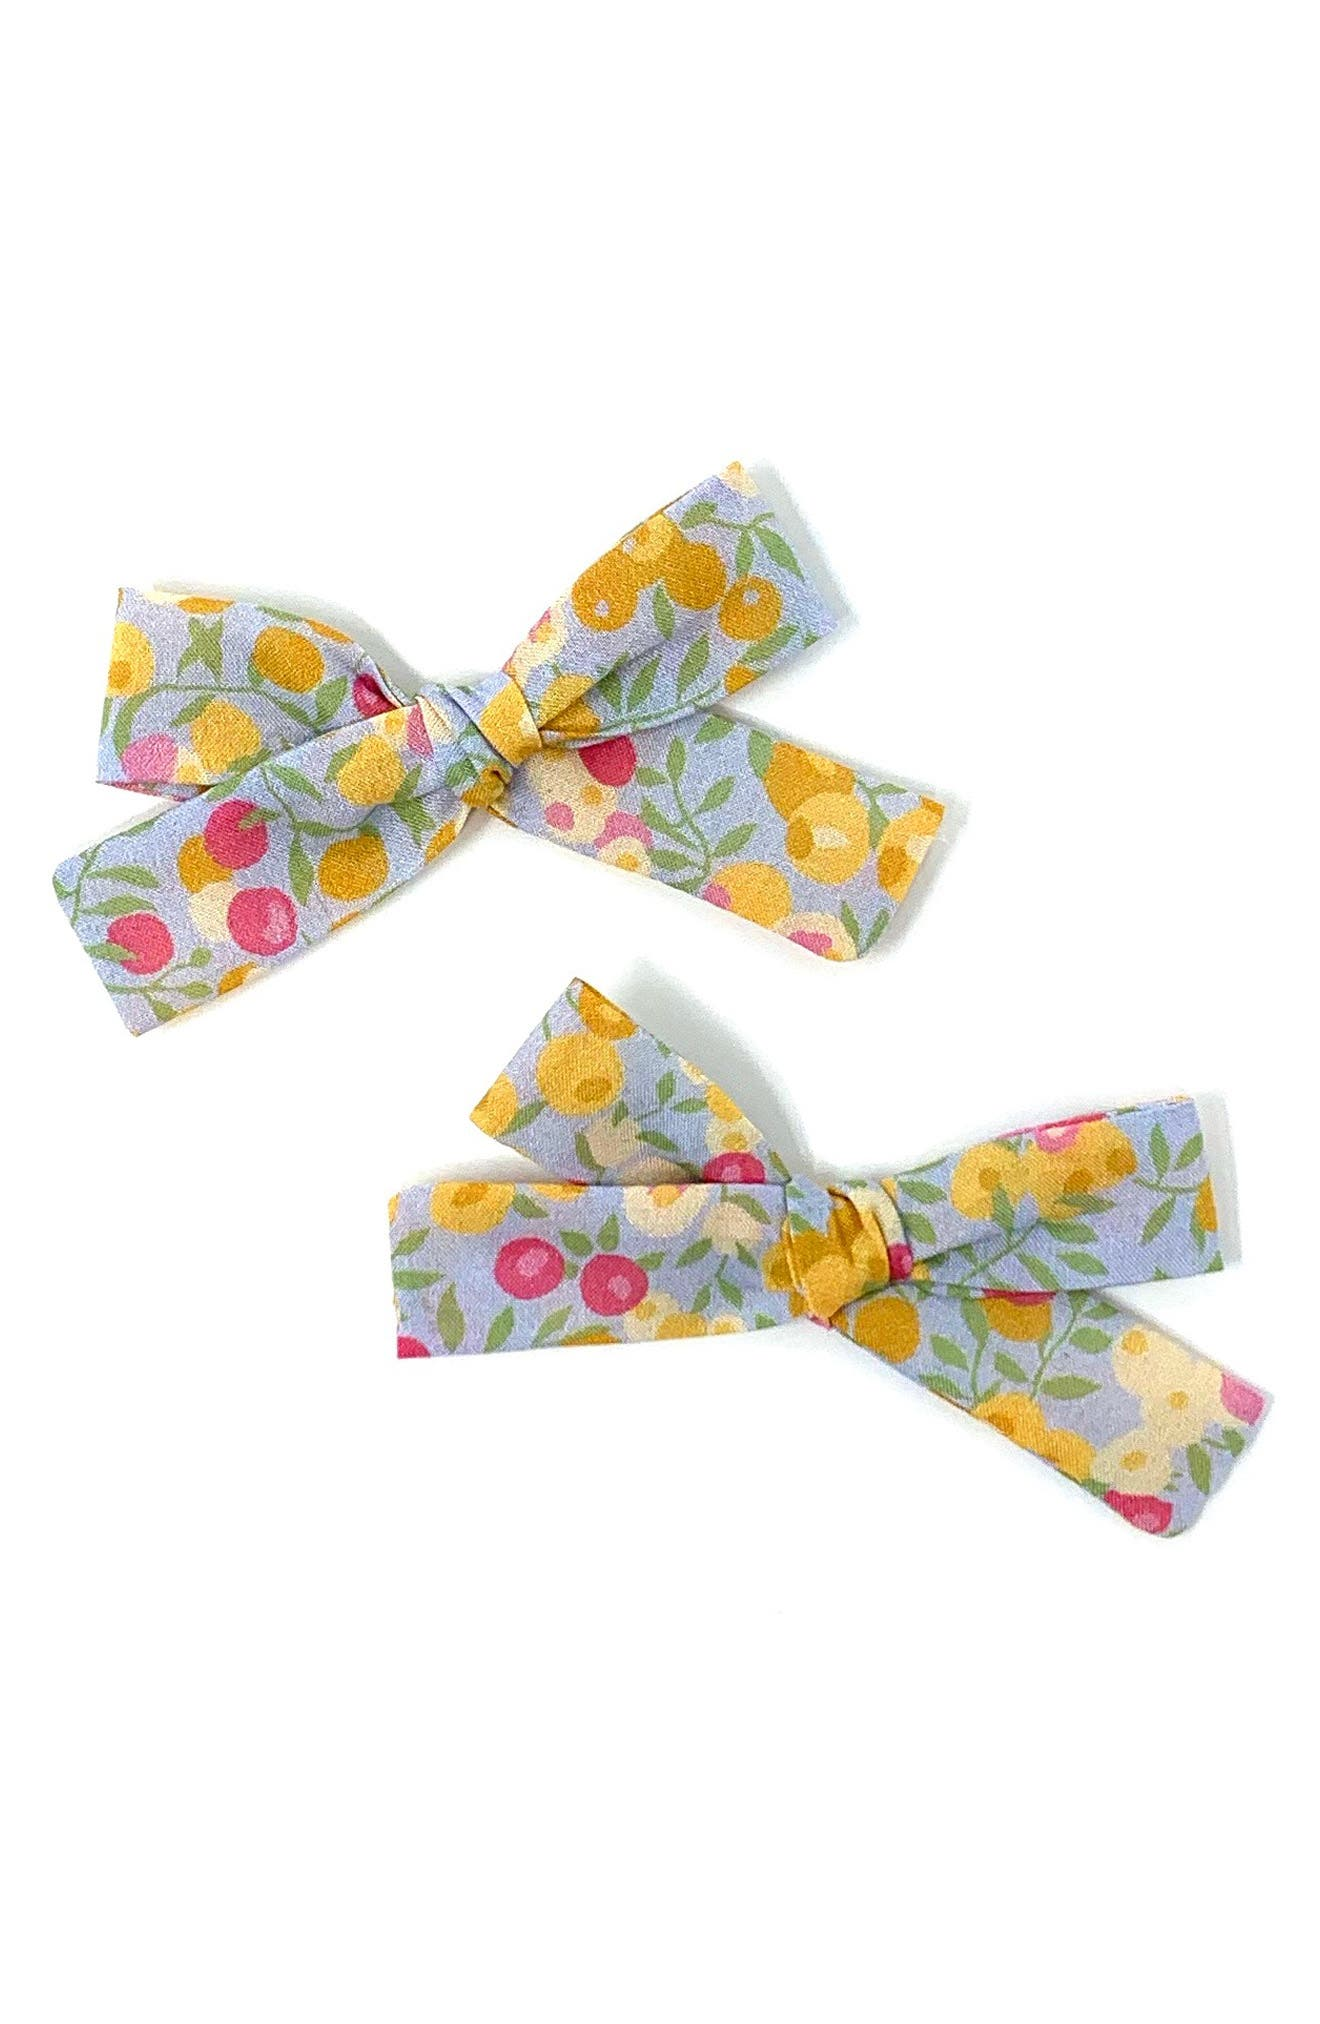 Lululuvs 2Pack Skinny Ribbon Pigtail Bows Hair Clips Size One Size  Yellow